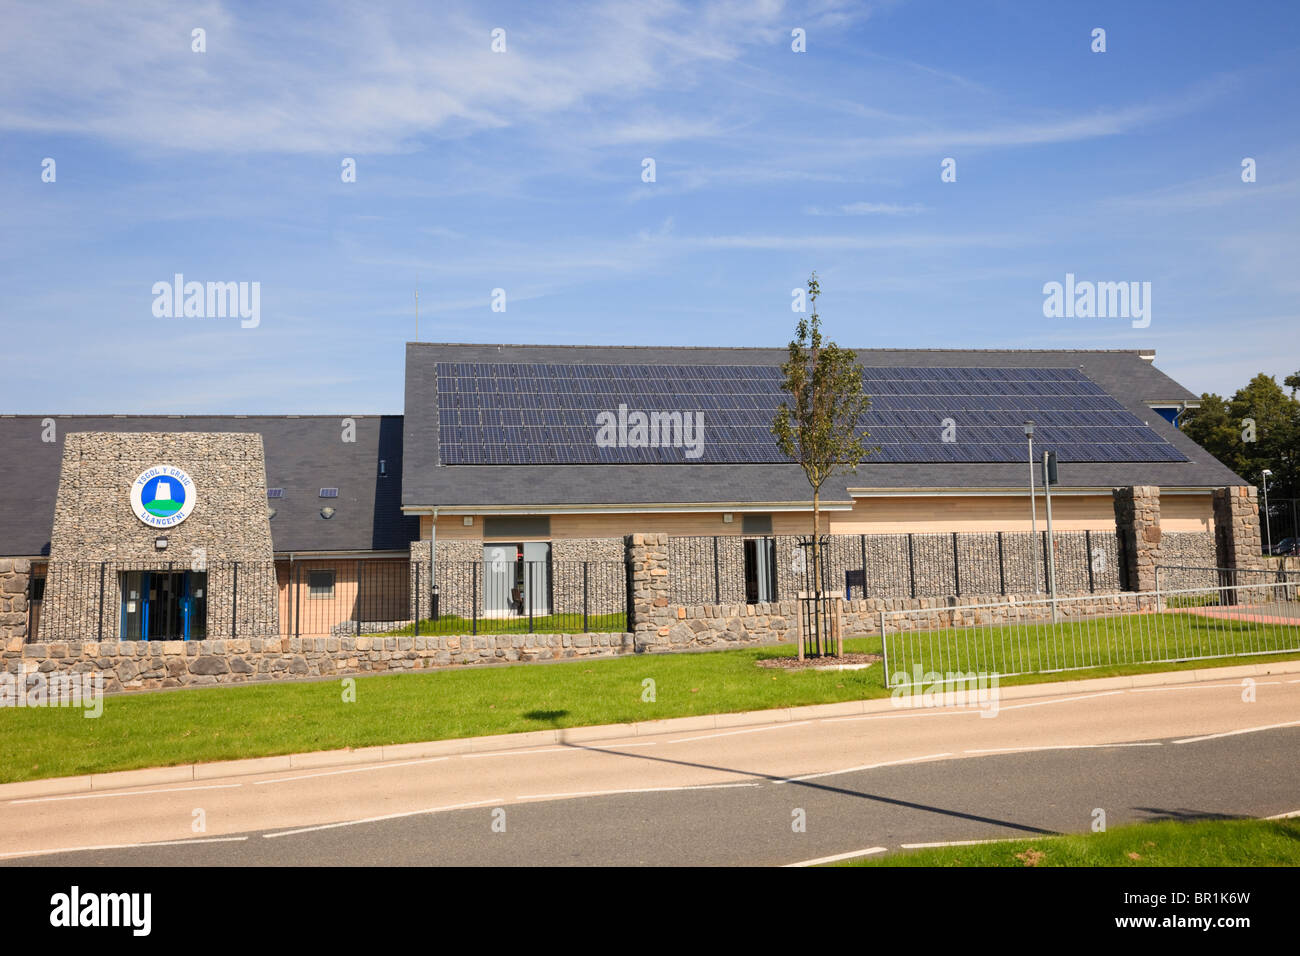 Llangefni, Isle of Anglesey, North Wales, UK, Europe. New Ysgol Y Graig primary school building with solar panels - Stock Image